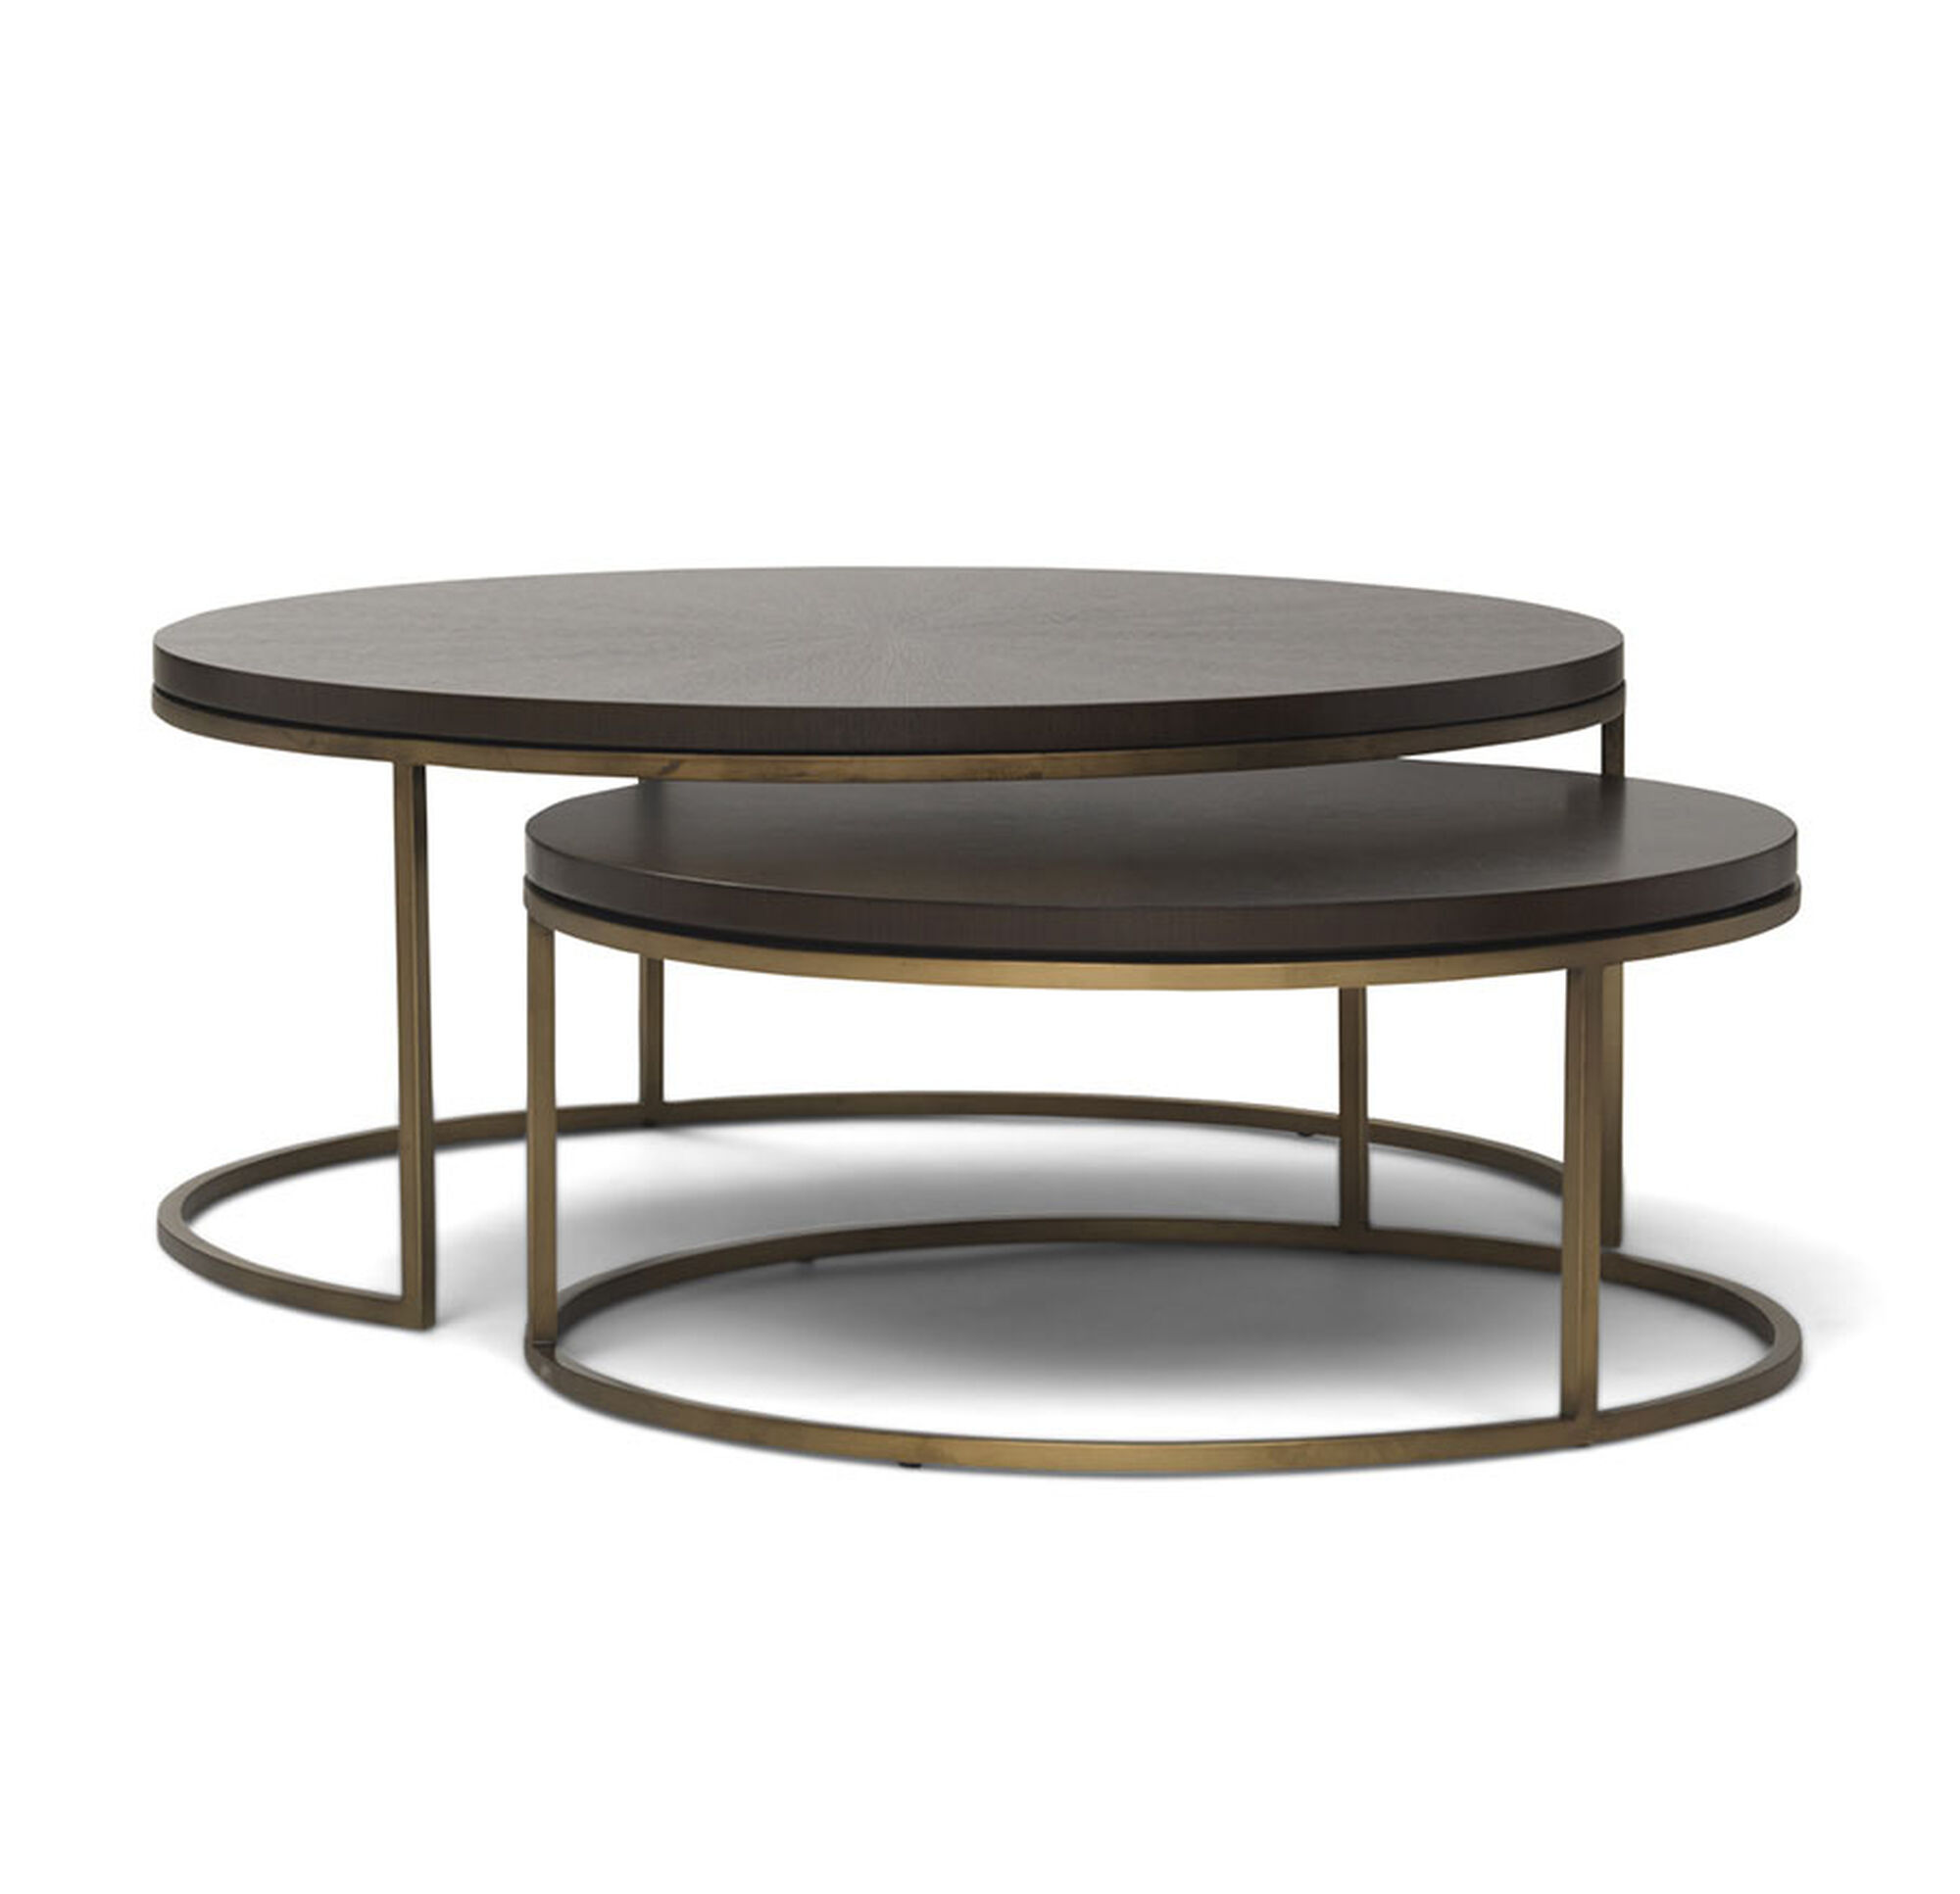 BASSEY NESTING COCKTAIL TABLE - Round nesting cocktail table